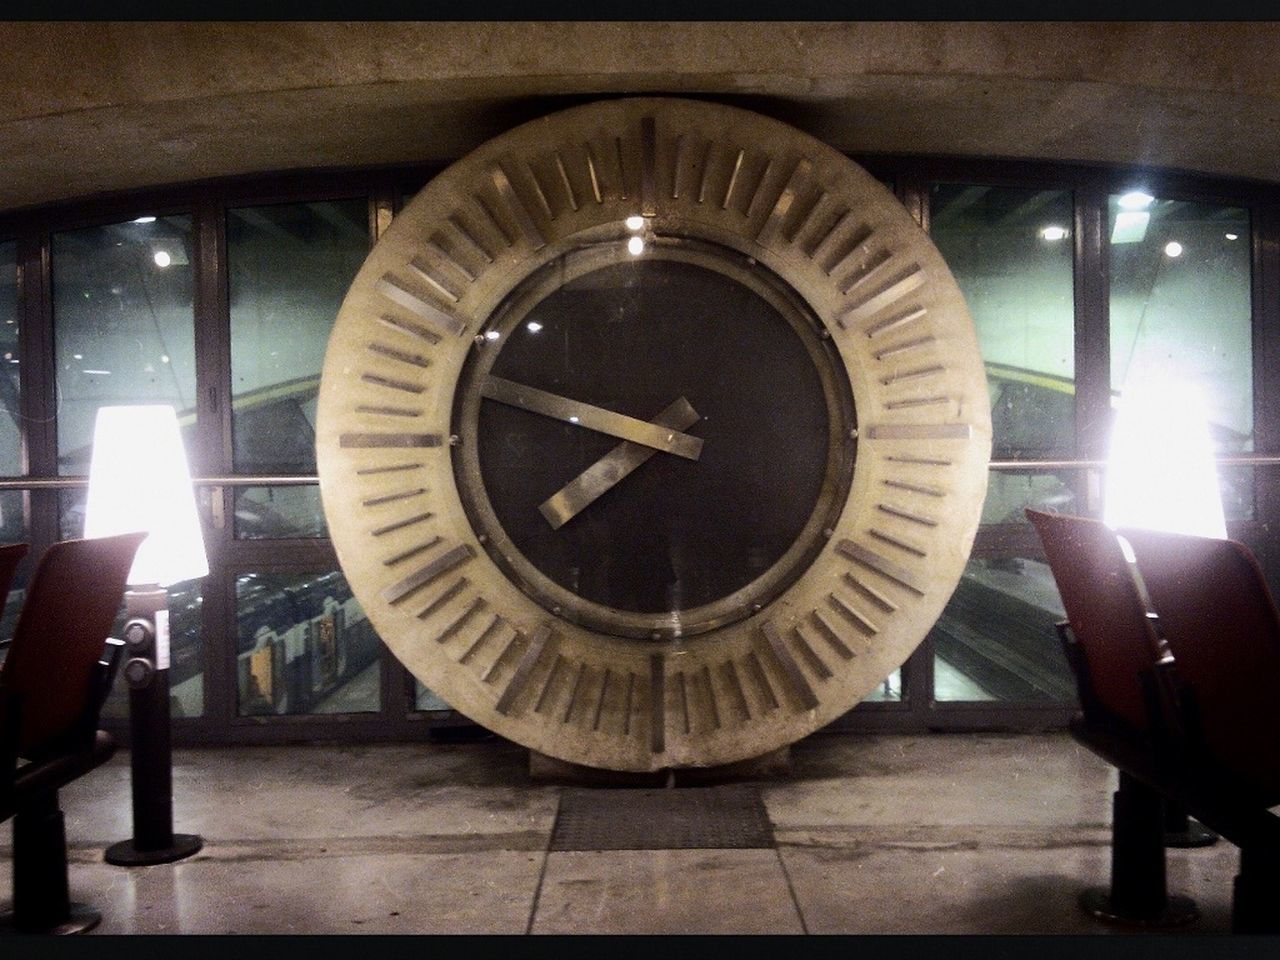 indoors, clock, time, illuminated, minute hand, no people, roman numeral, night, clock face, close-up